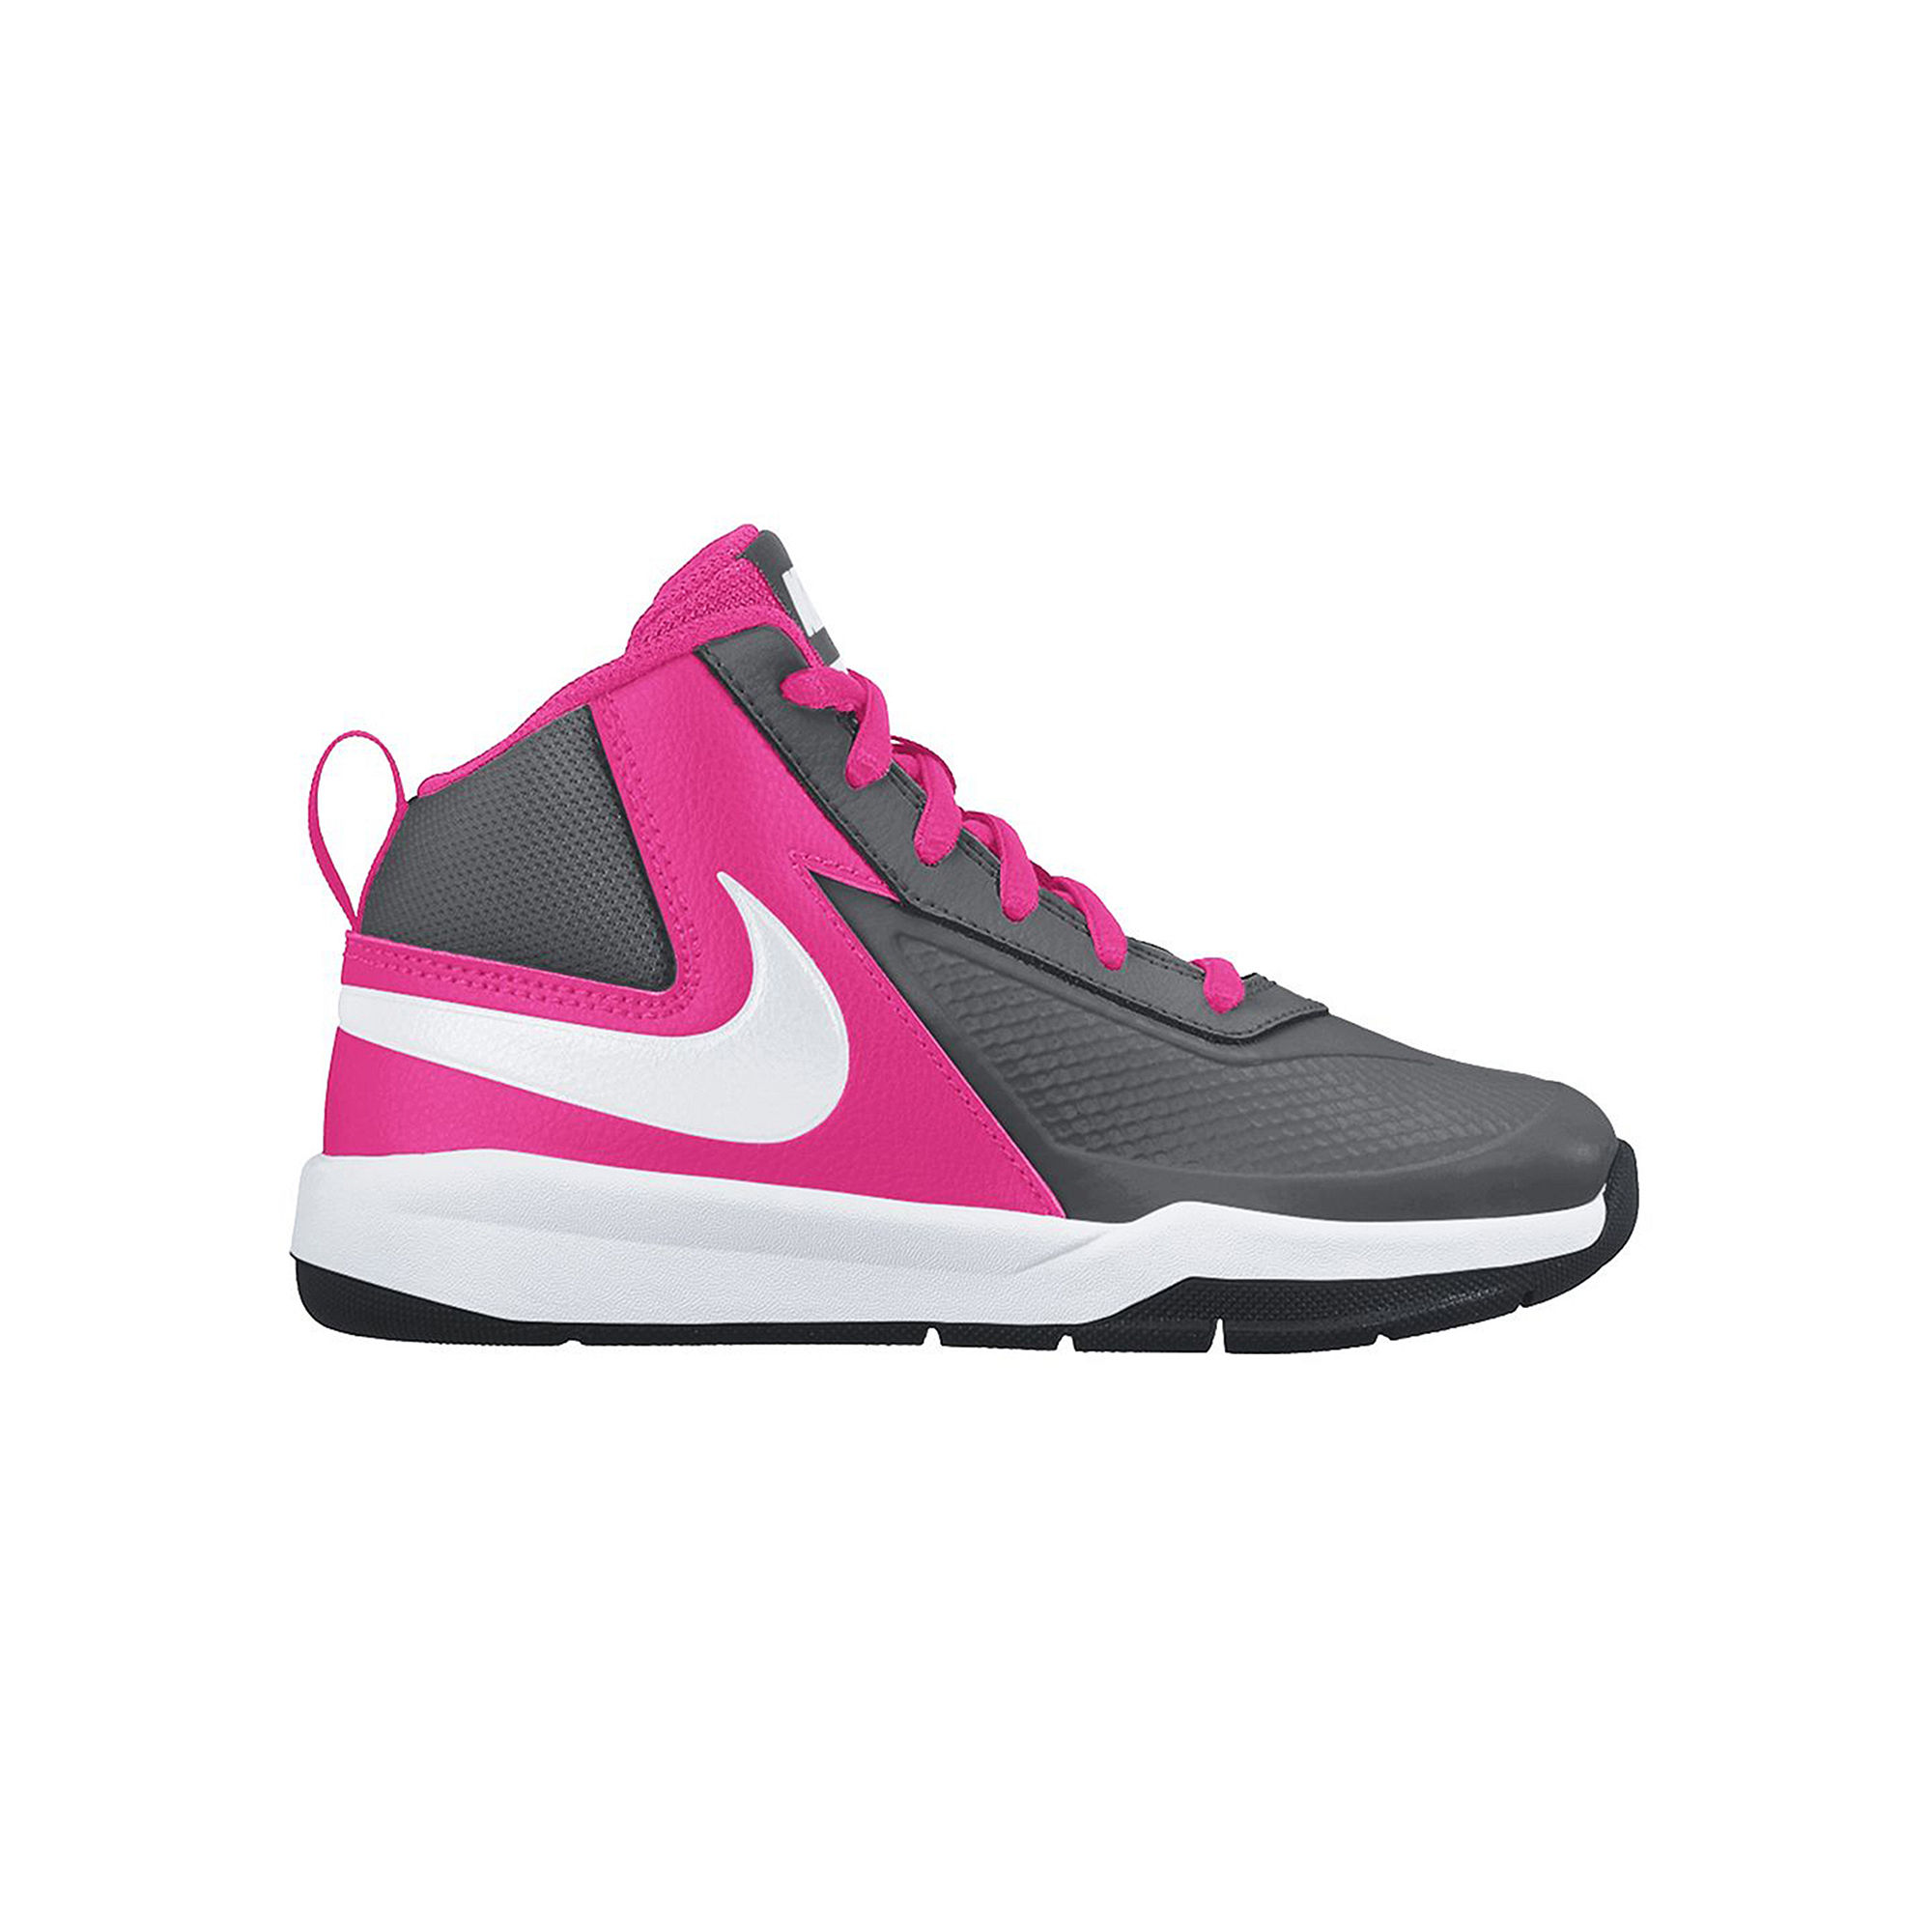 nike shoes for basketball boys and girls 934069